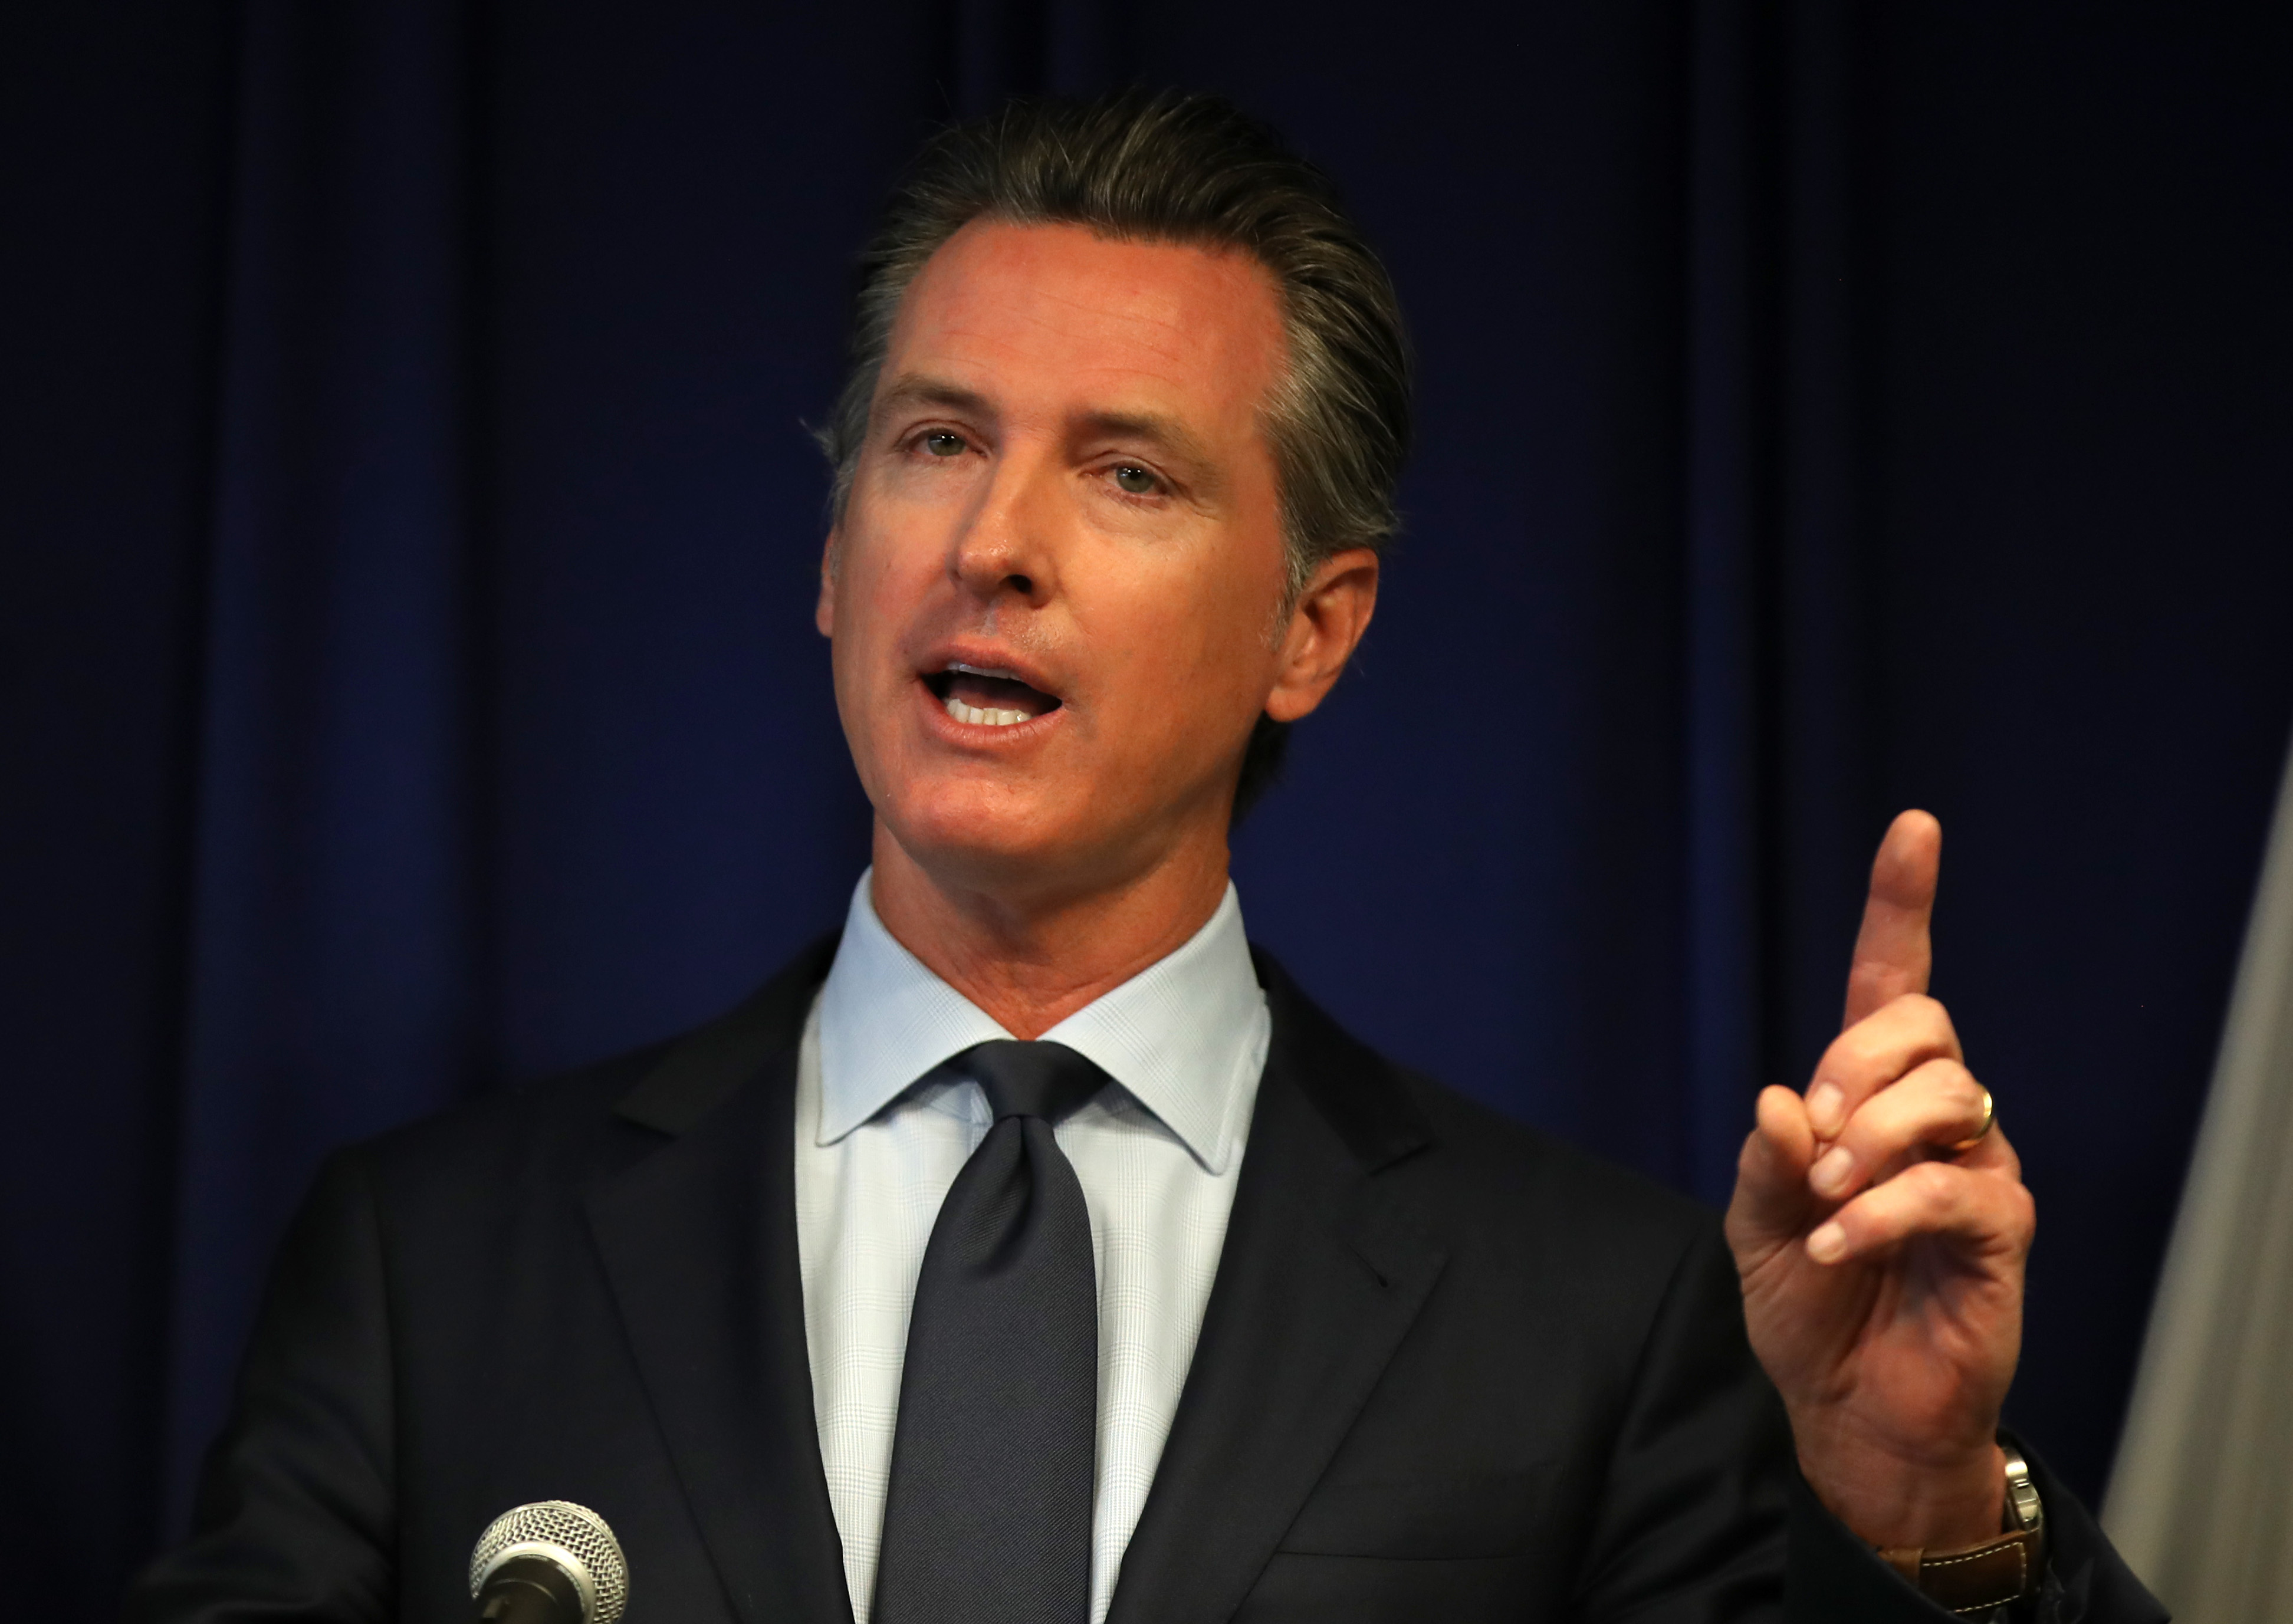 California Gov. Gavin Newsom speaks during a news conference in Sacramento, California. (Photo by Justin Sullivan/Getty Images)